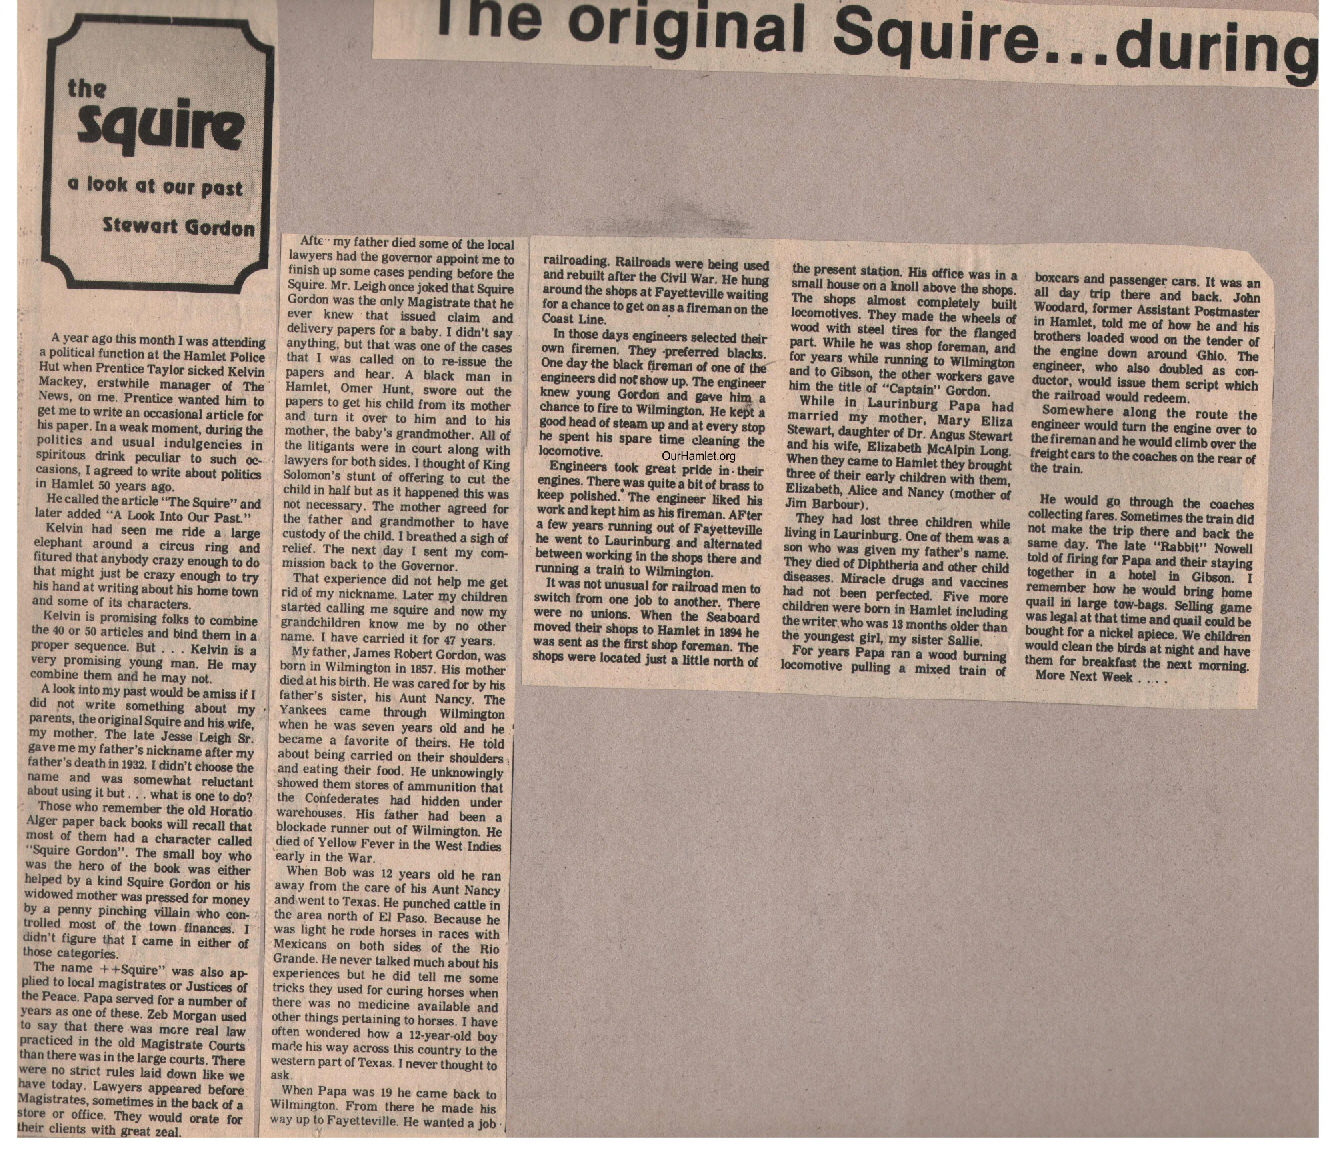 The Squire - The original Squire a OH